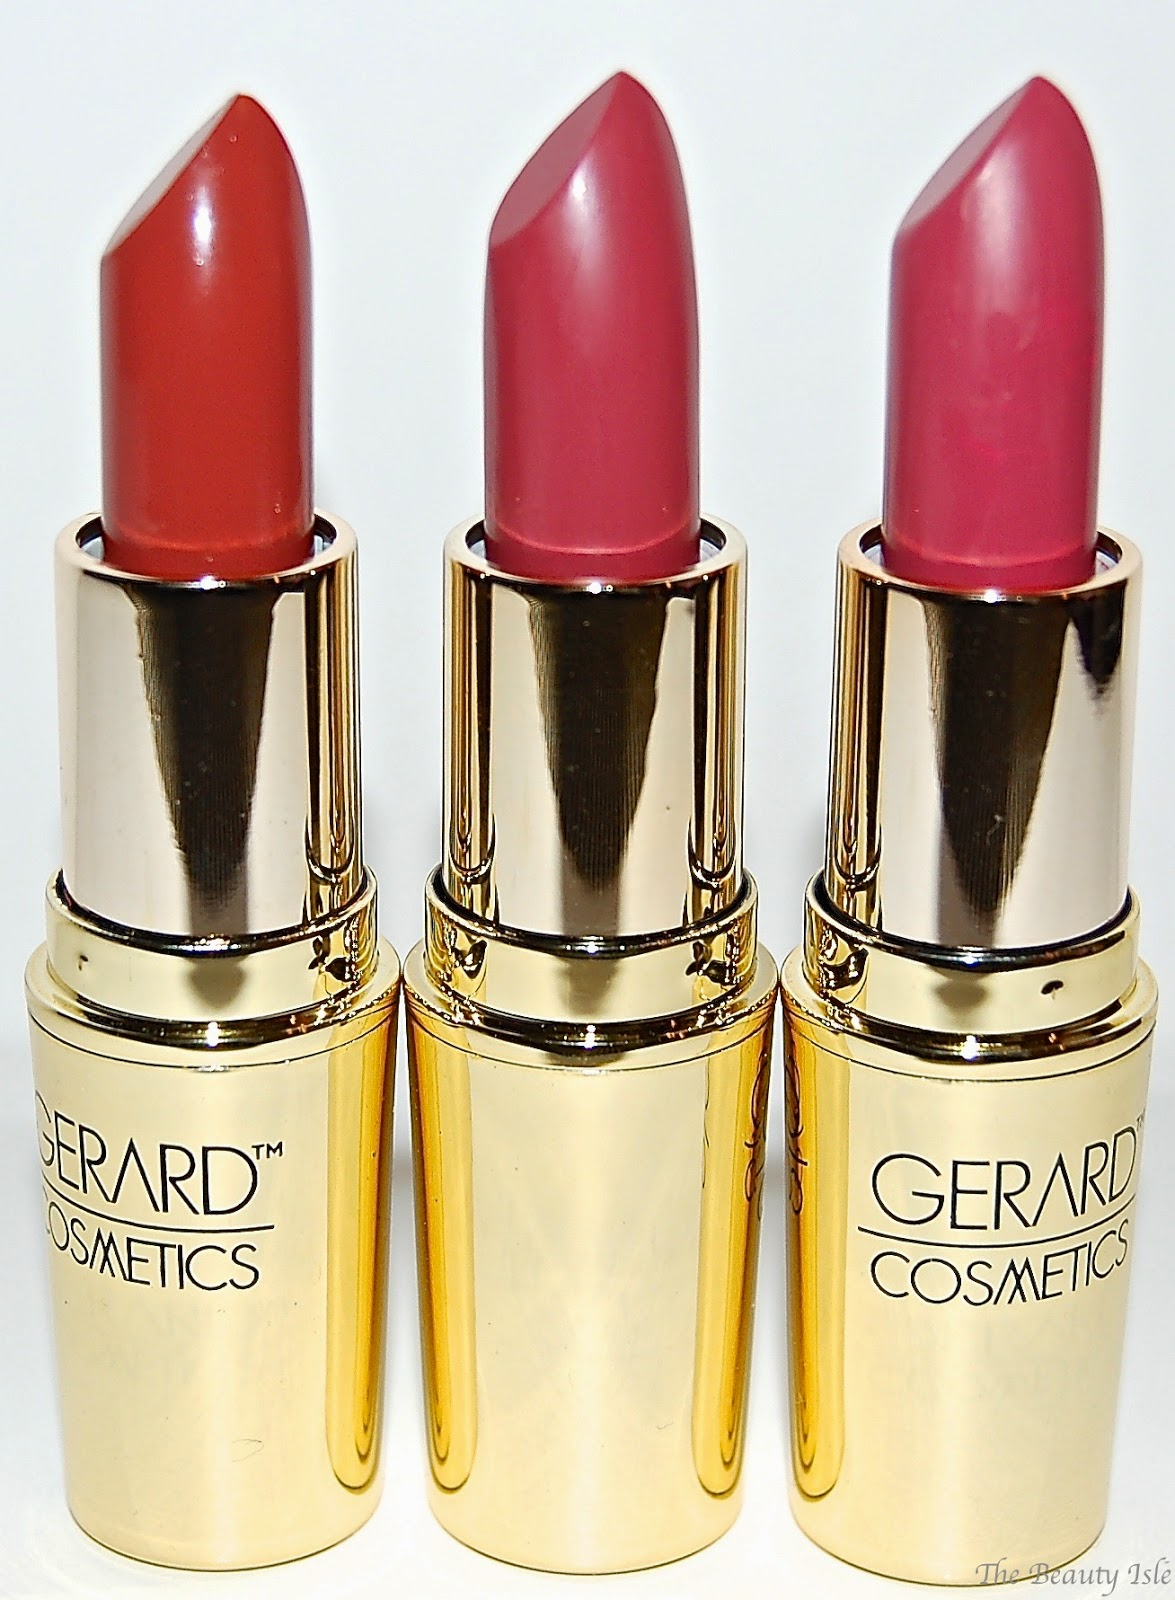 Gerard Cosmetics 1995, Rodeo Drive, Berry Smoothie Lipstick